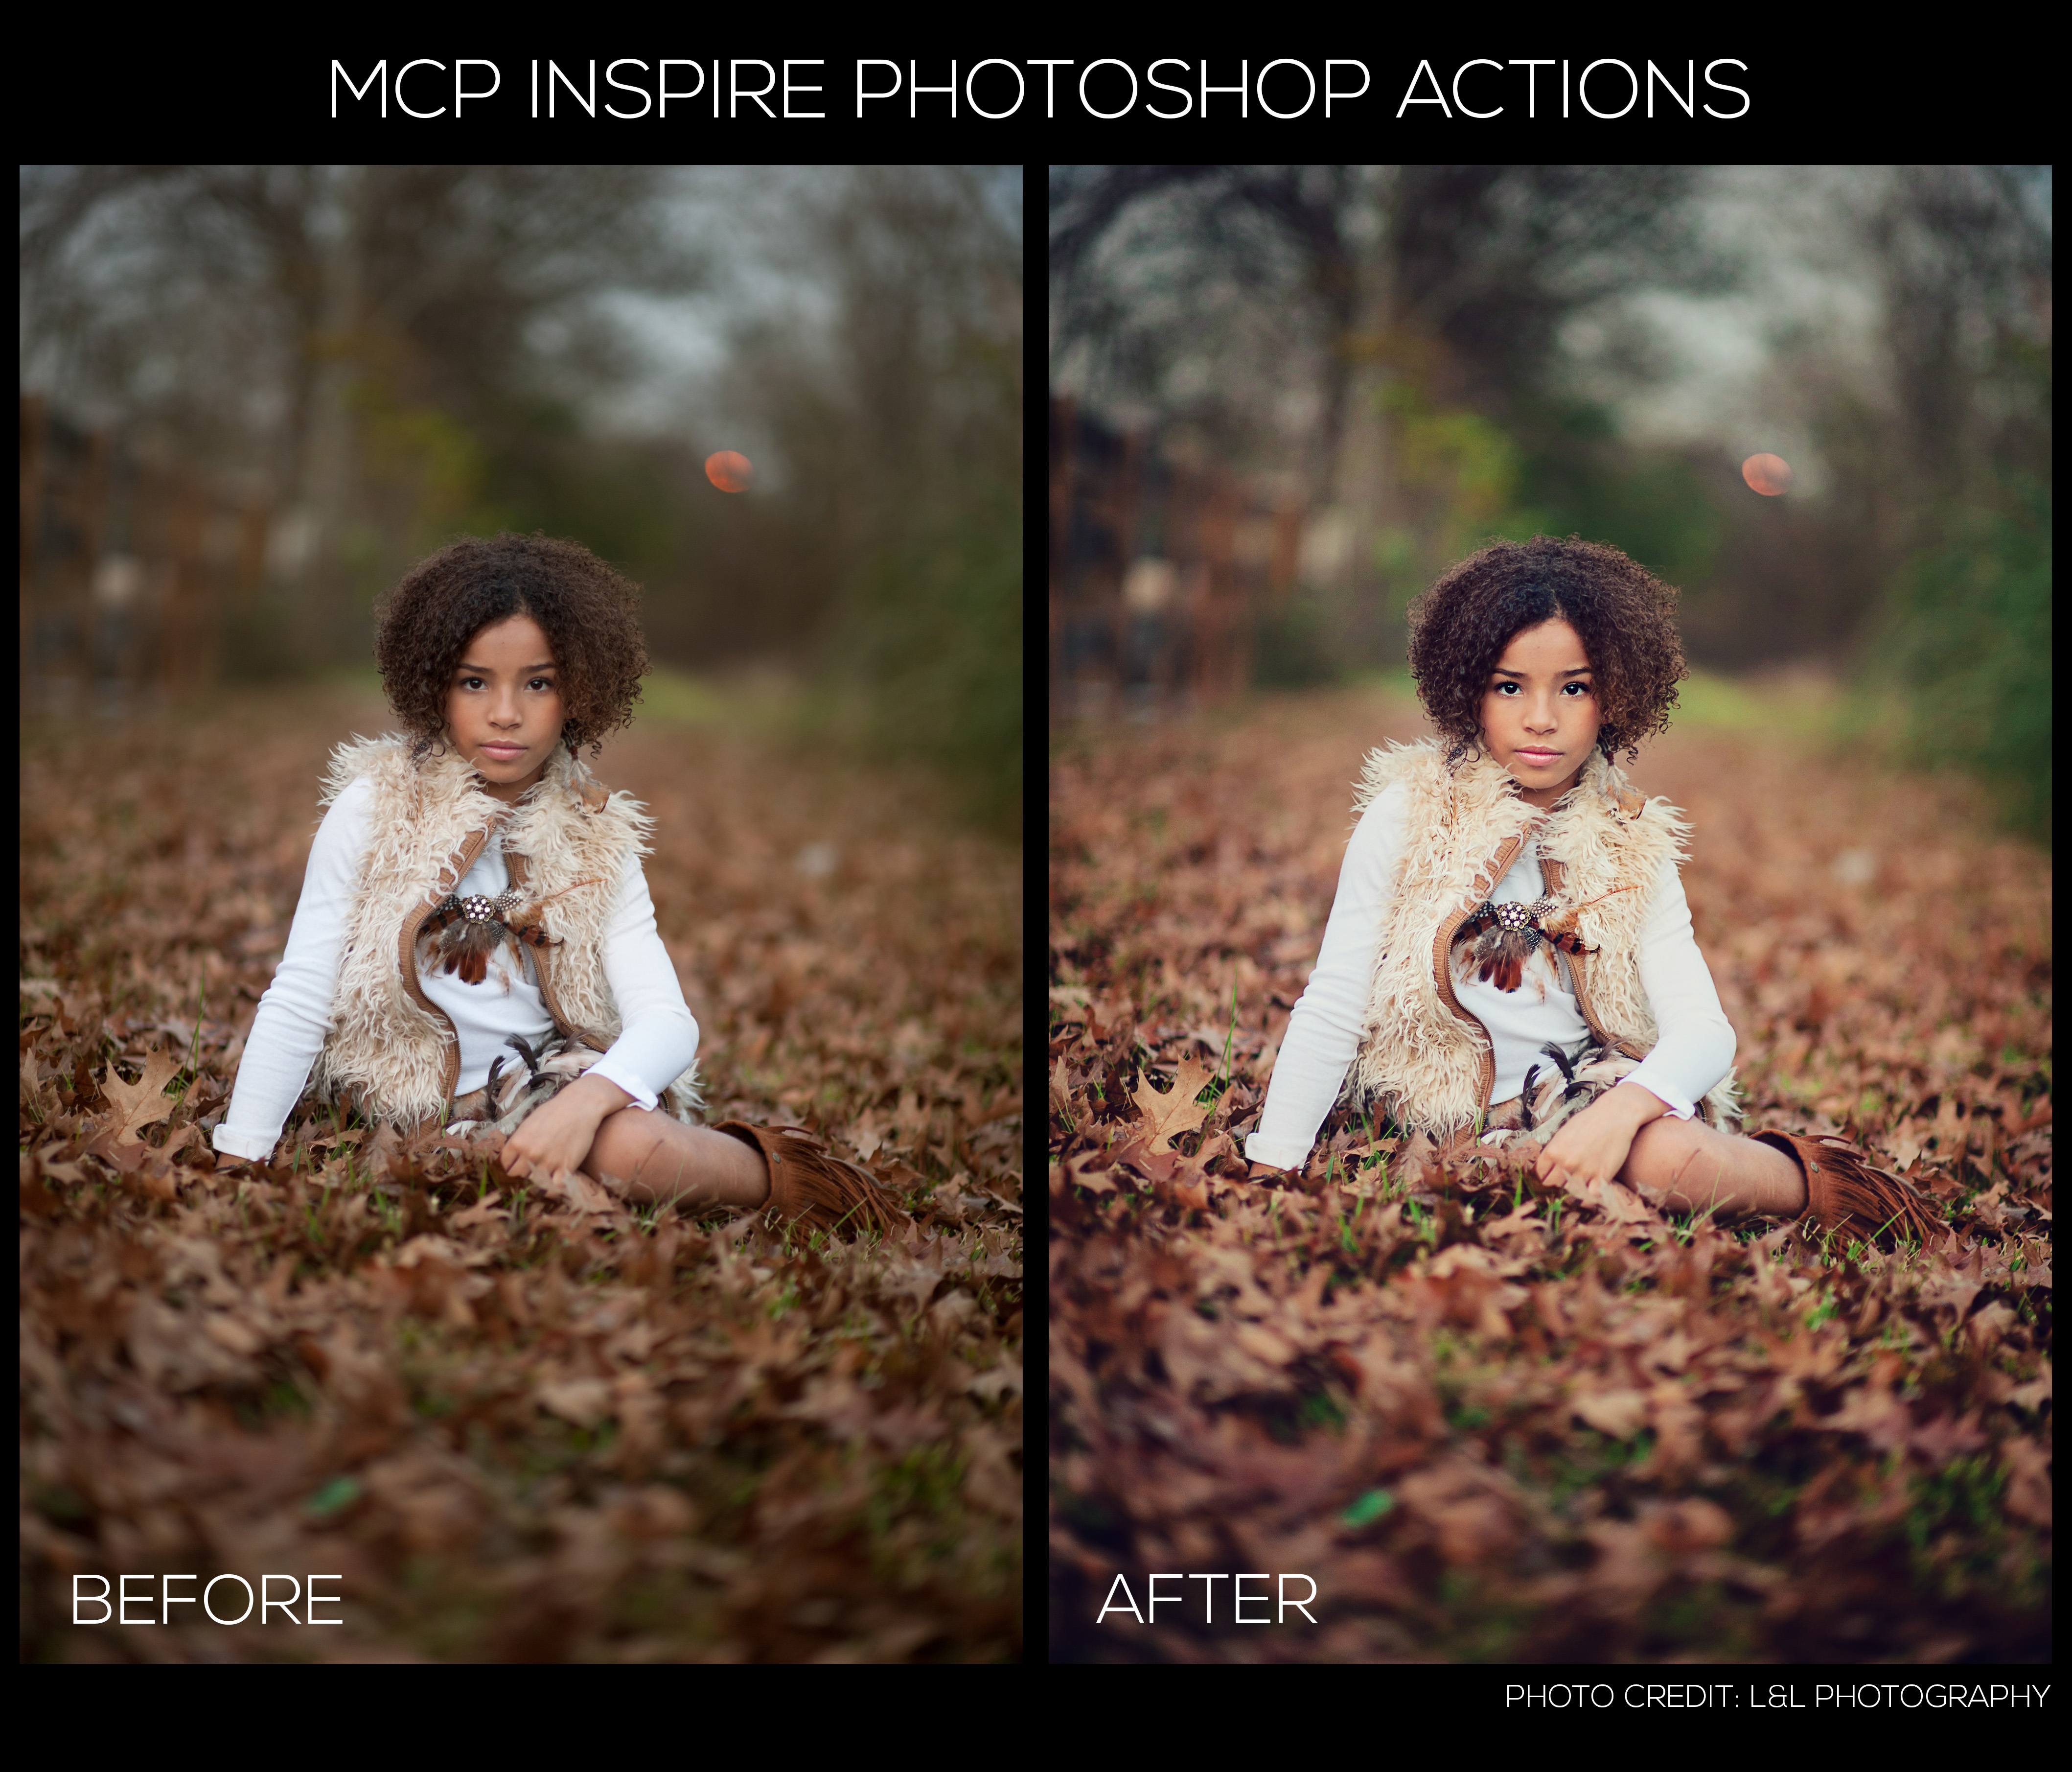 Inspire-BA-LL-Photography6 MCP Inspire Photoshop Action Set is Now Available Announcements Photoshop Actions